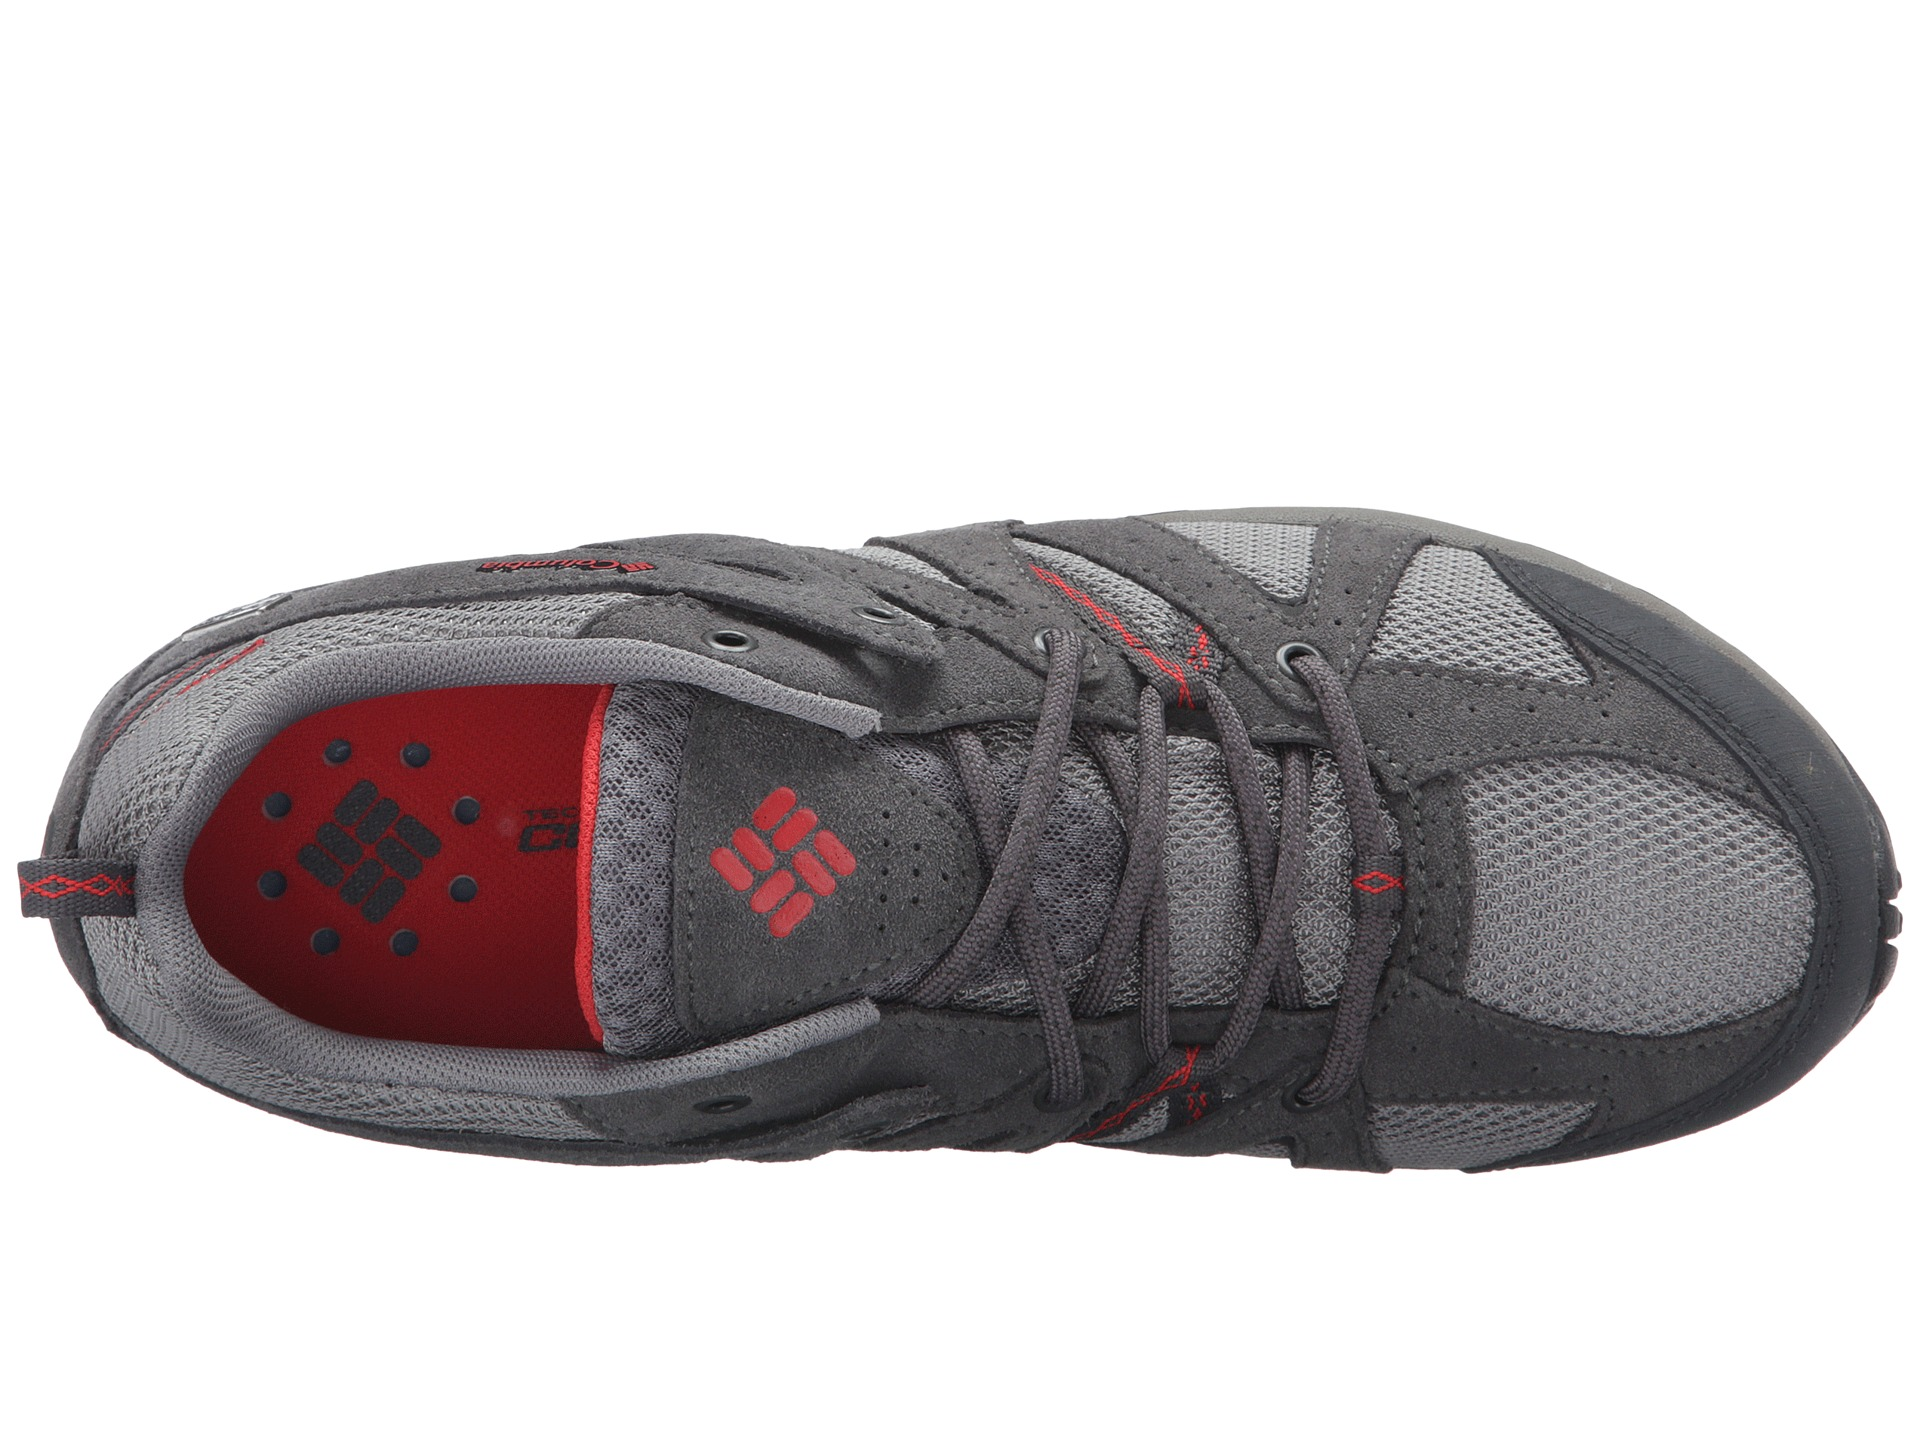 Columbia Men S Grand Canyon Hiking Shoes Review